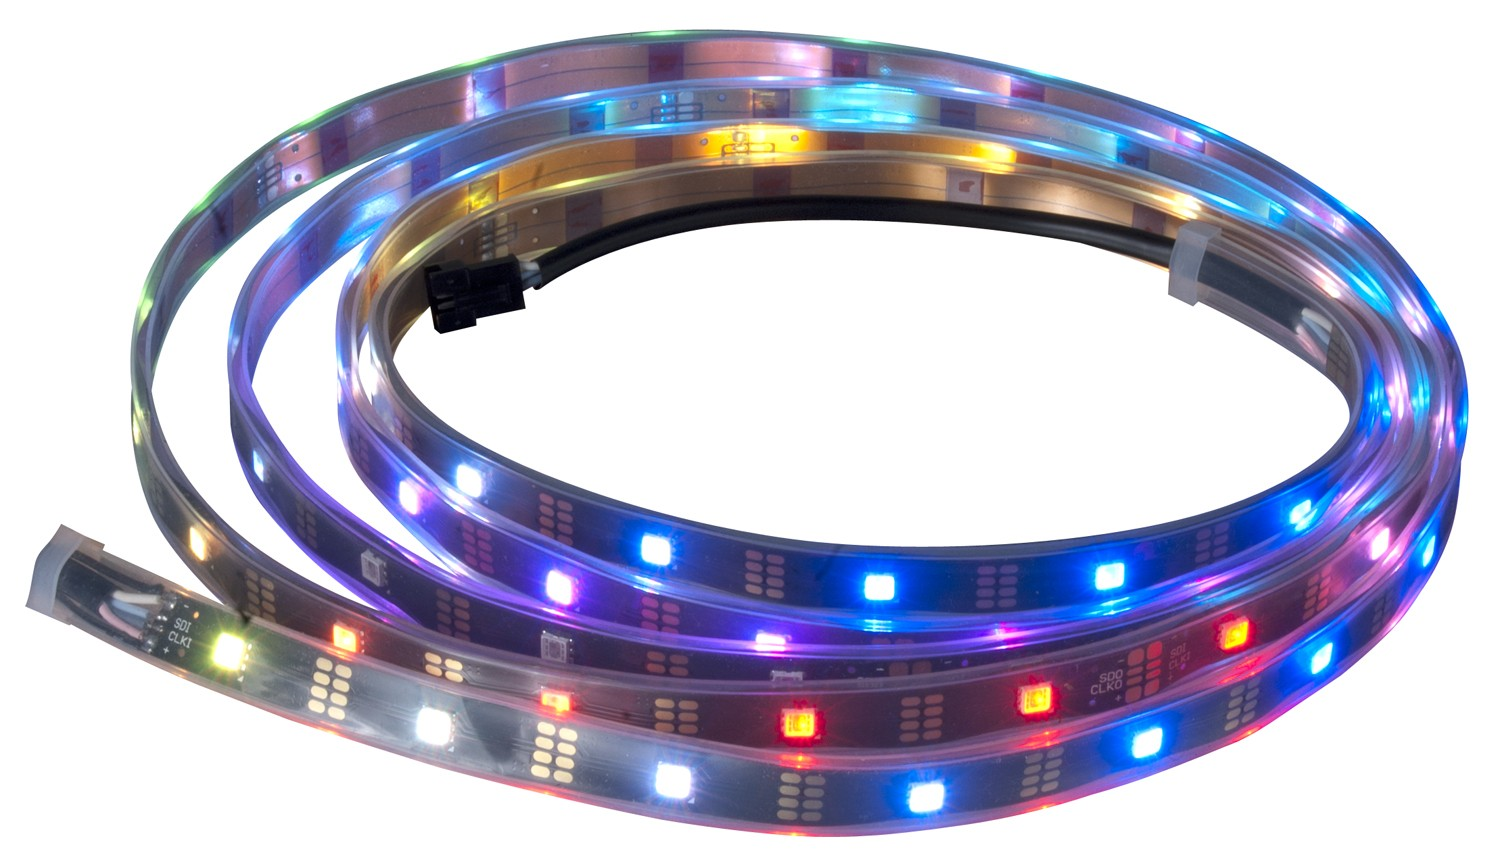 ELATION FLE742 FLEXIBLE LED PIXEL TAPE WITH WATERPROOF COVER 10FT